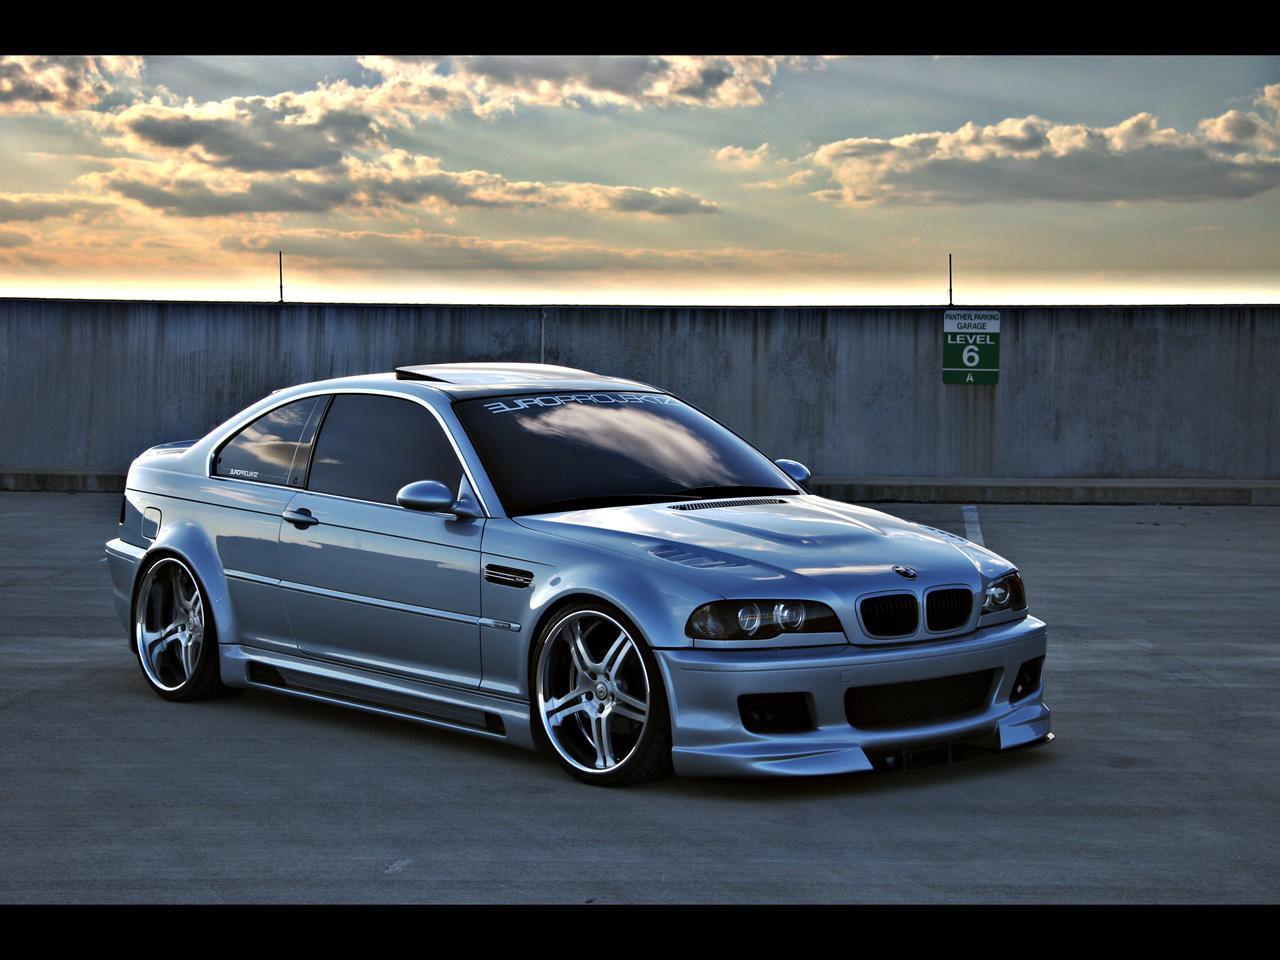 BMW Ci Review Amazing Pictures And Images Look At The Car - Bmw 325ci 2000